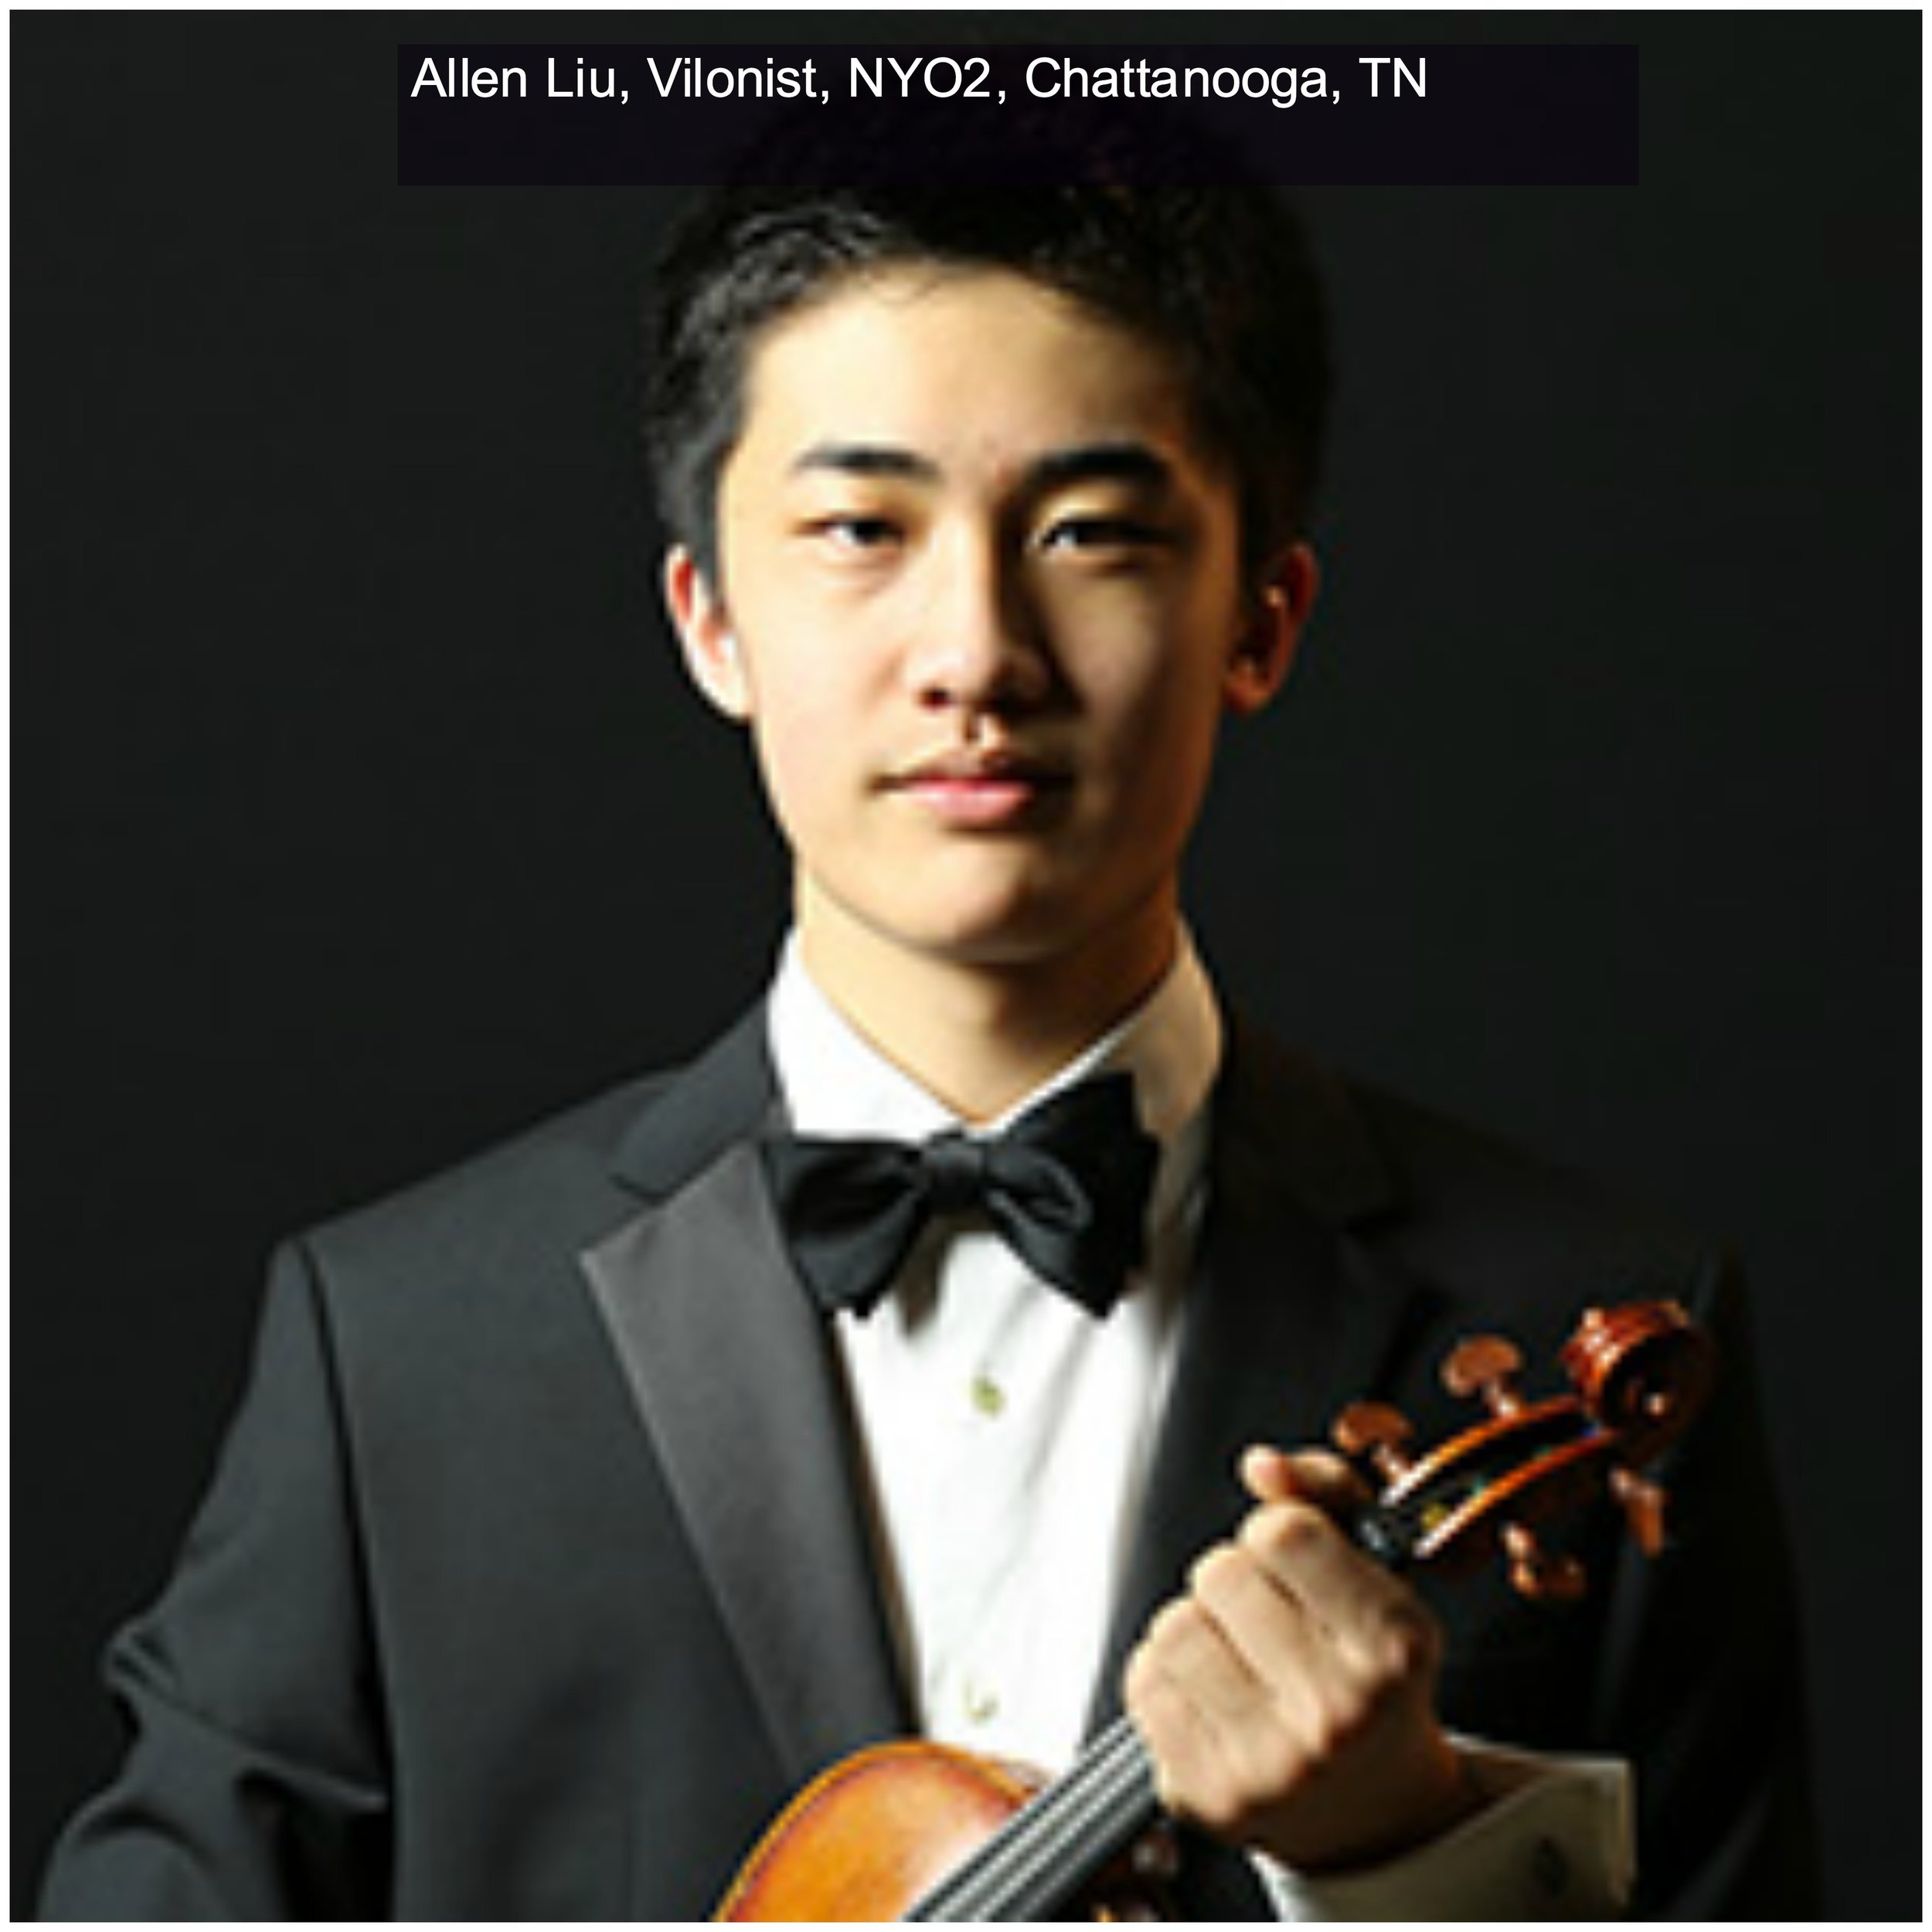 Allen Liu writes about his Project 440 experience at Carnegie Hall's NYO2